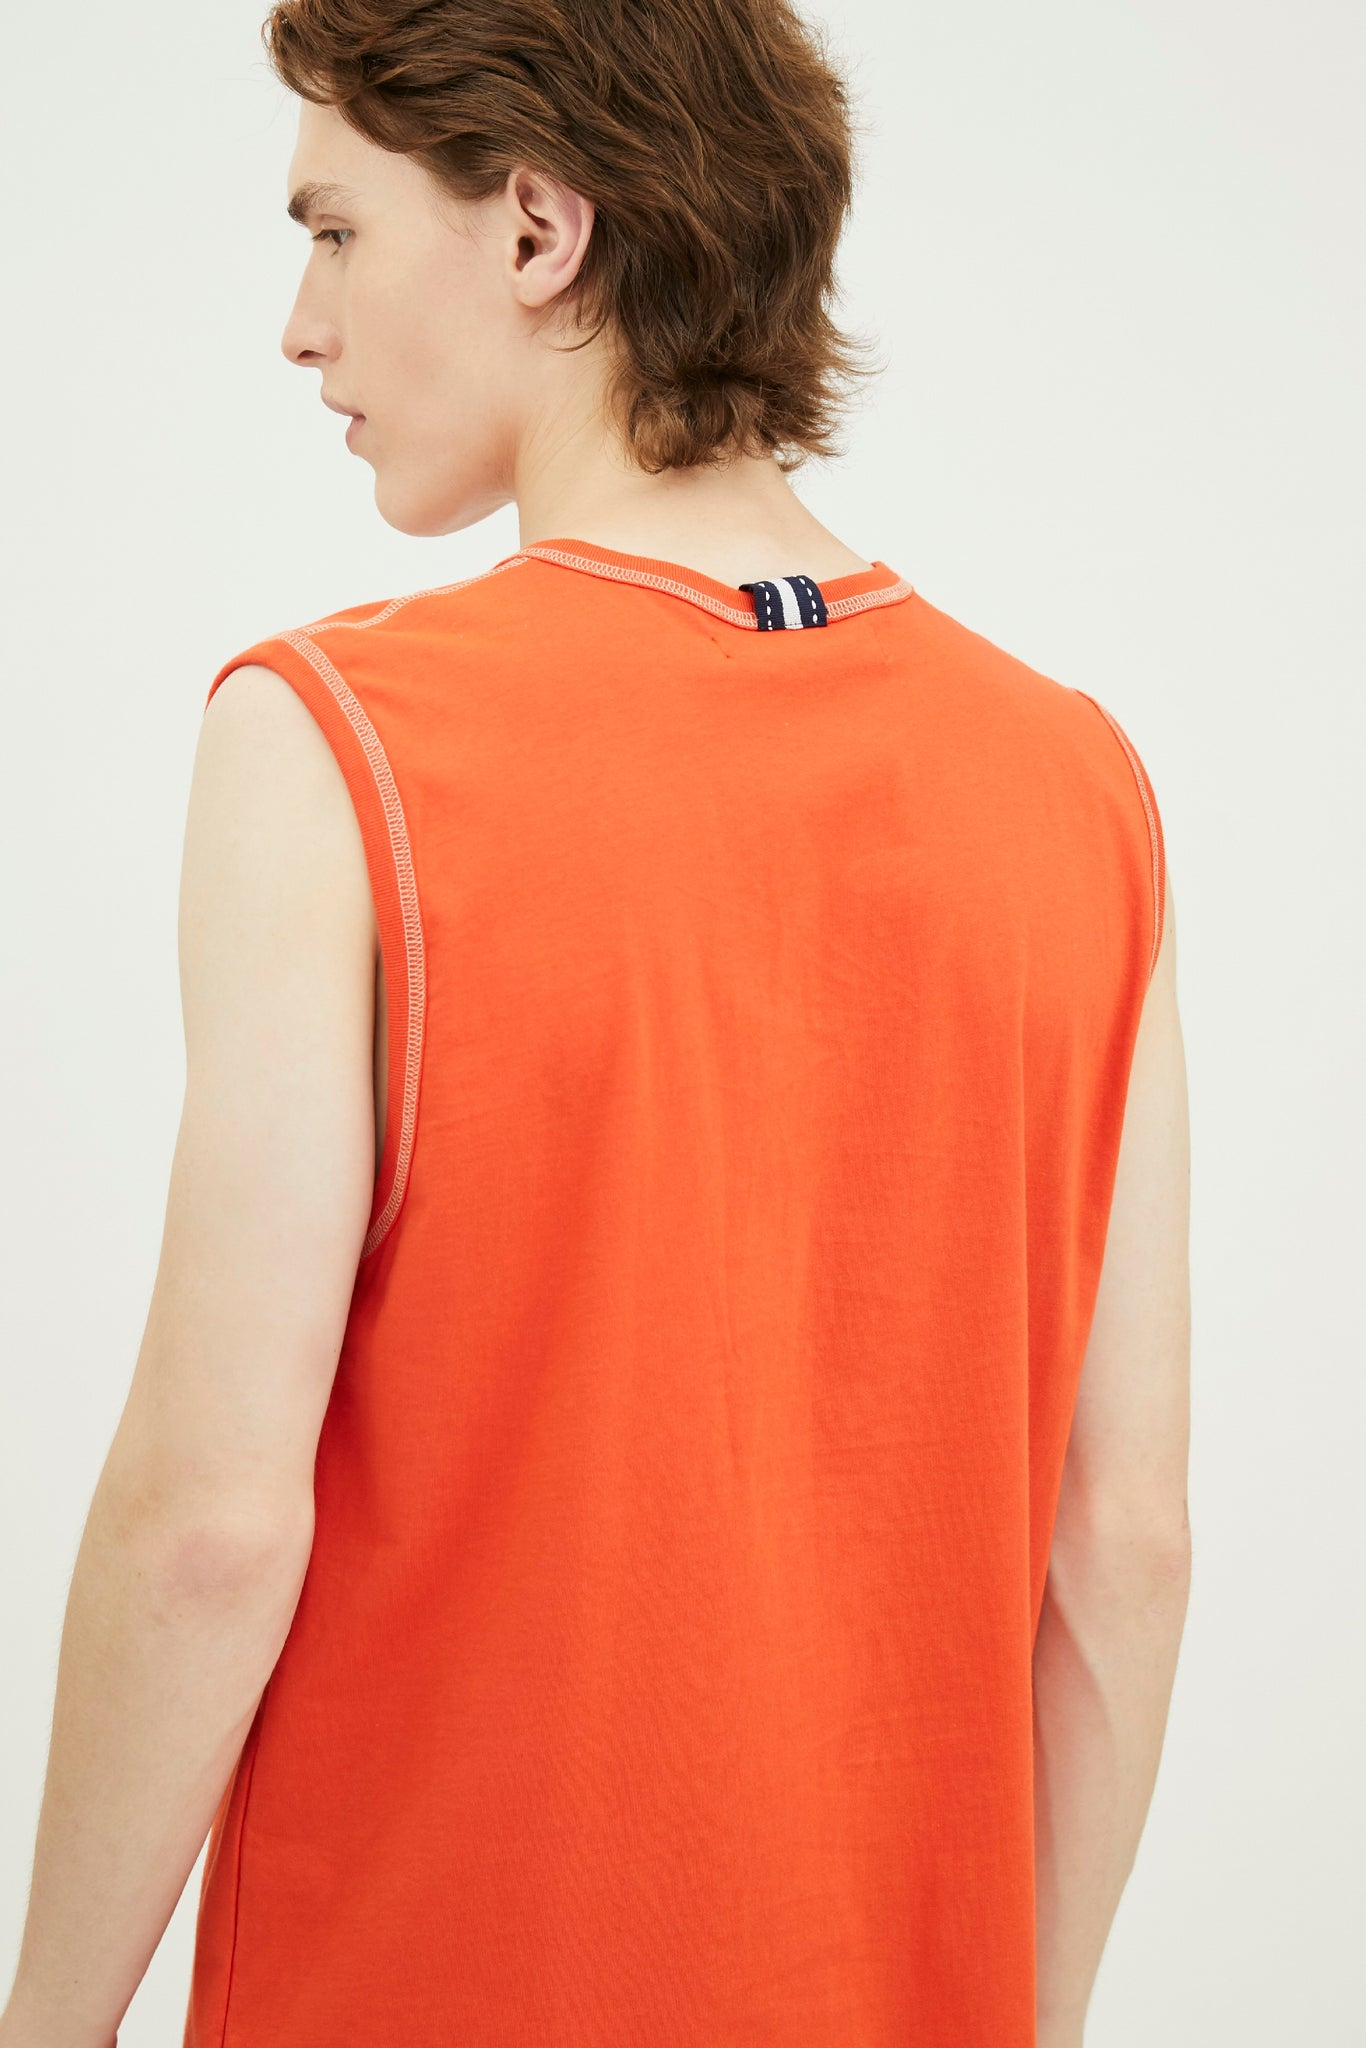 Load image into Gallery viewer, COTTON JERSEY TANK TOP WITH LOGO EMBROIDED  (S20MD03072OR1A)